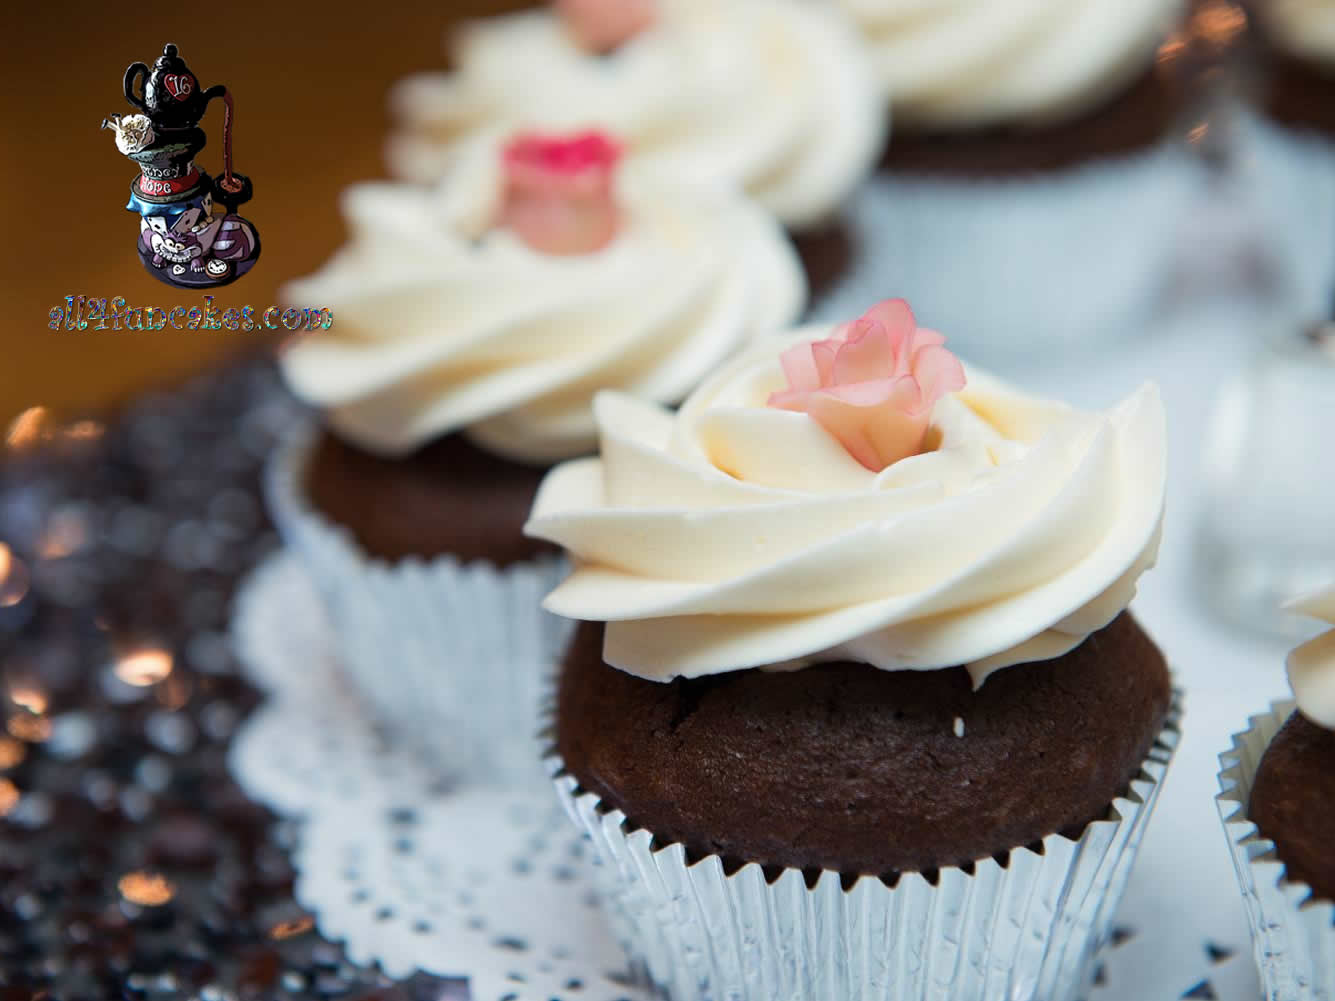 Fancy Cupcakes with Fondant Rose Topper by All4Fun Cakes LLC